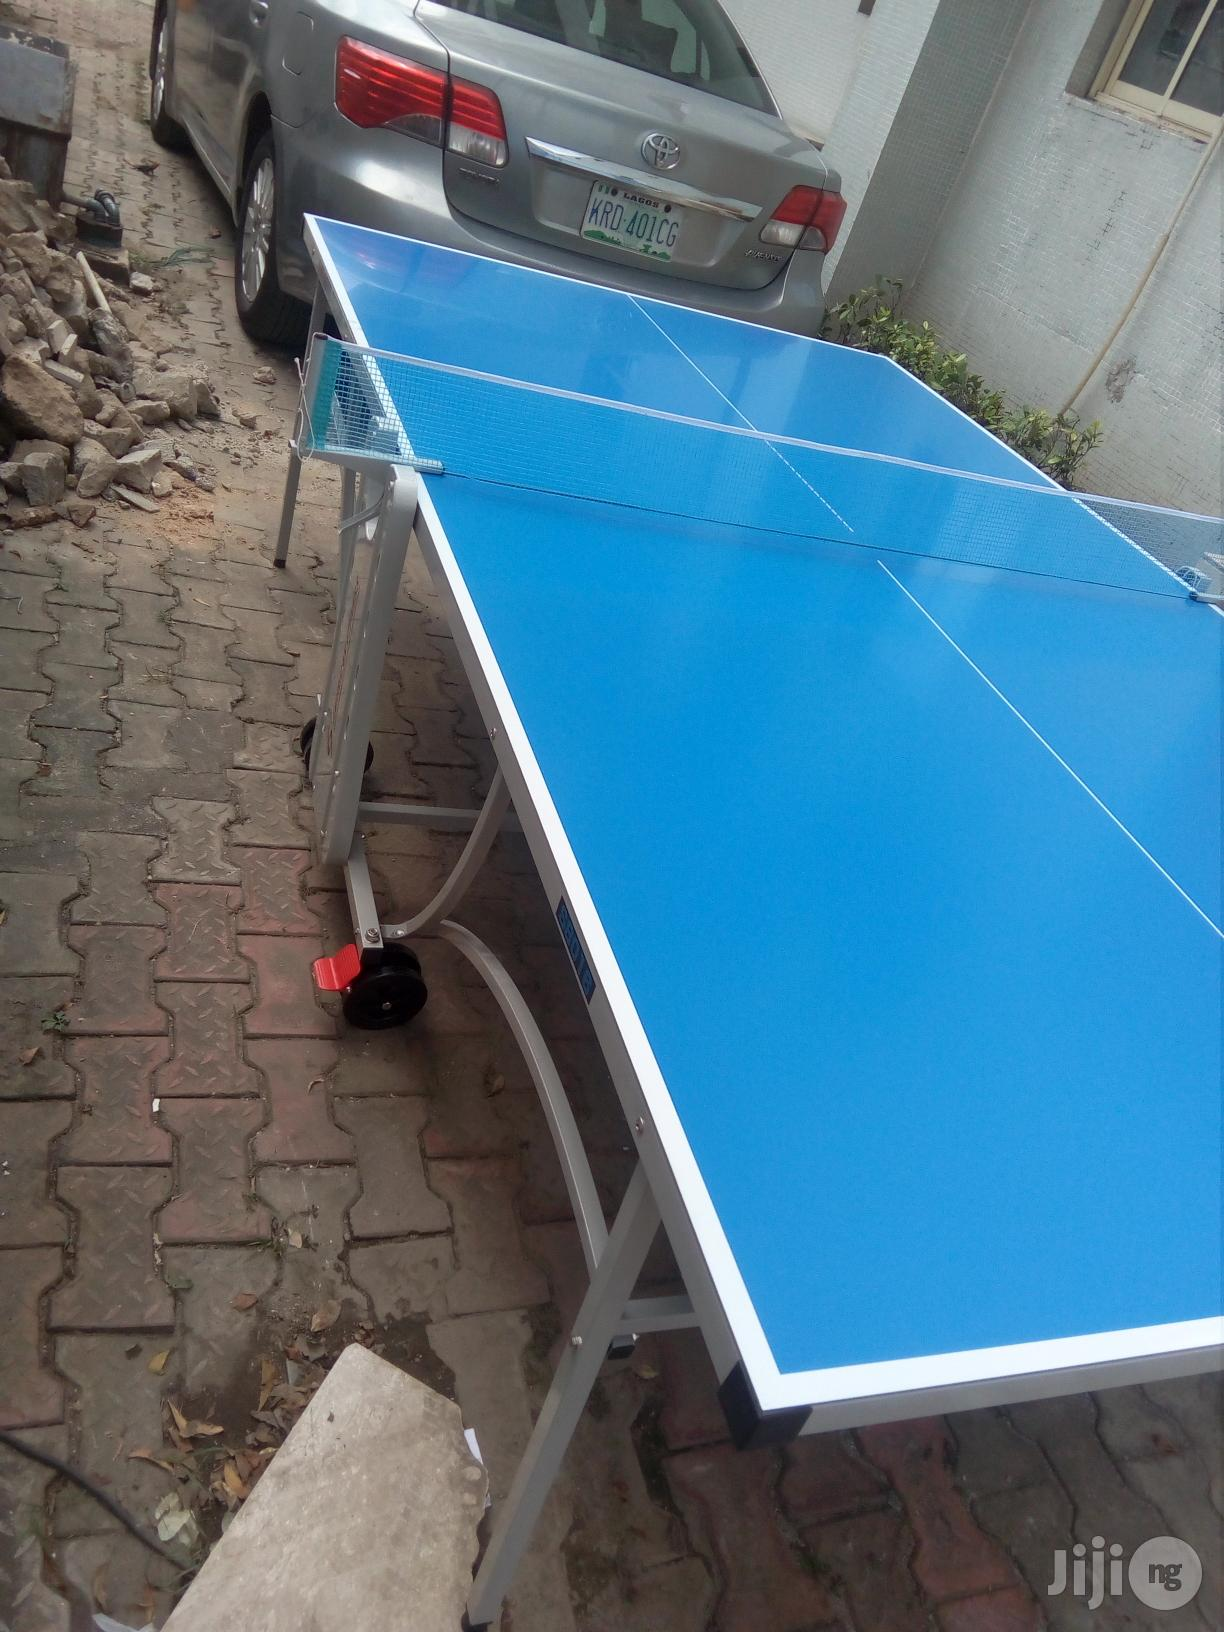 Archive: Outdoor Table Tennis Board